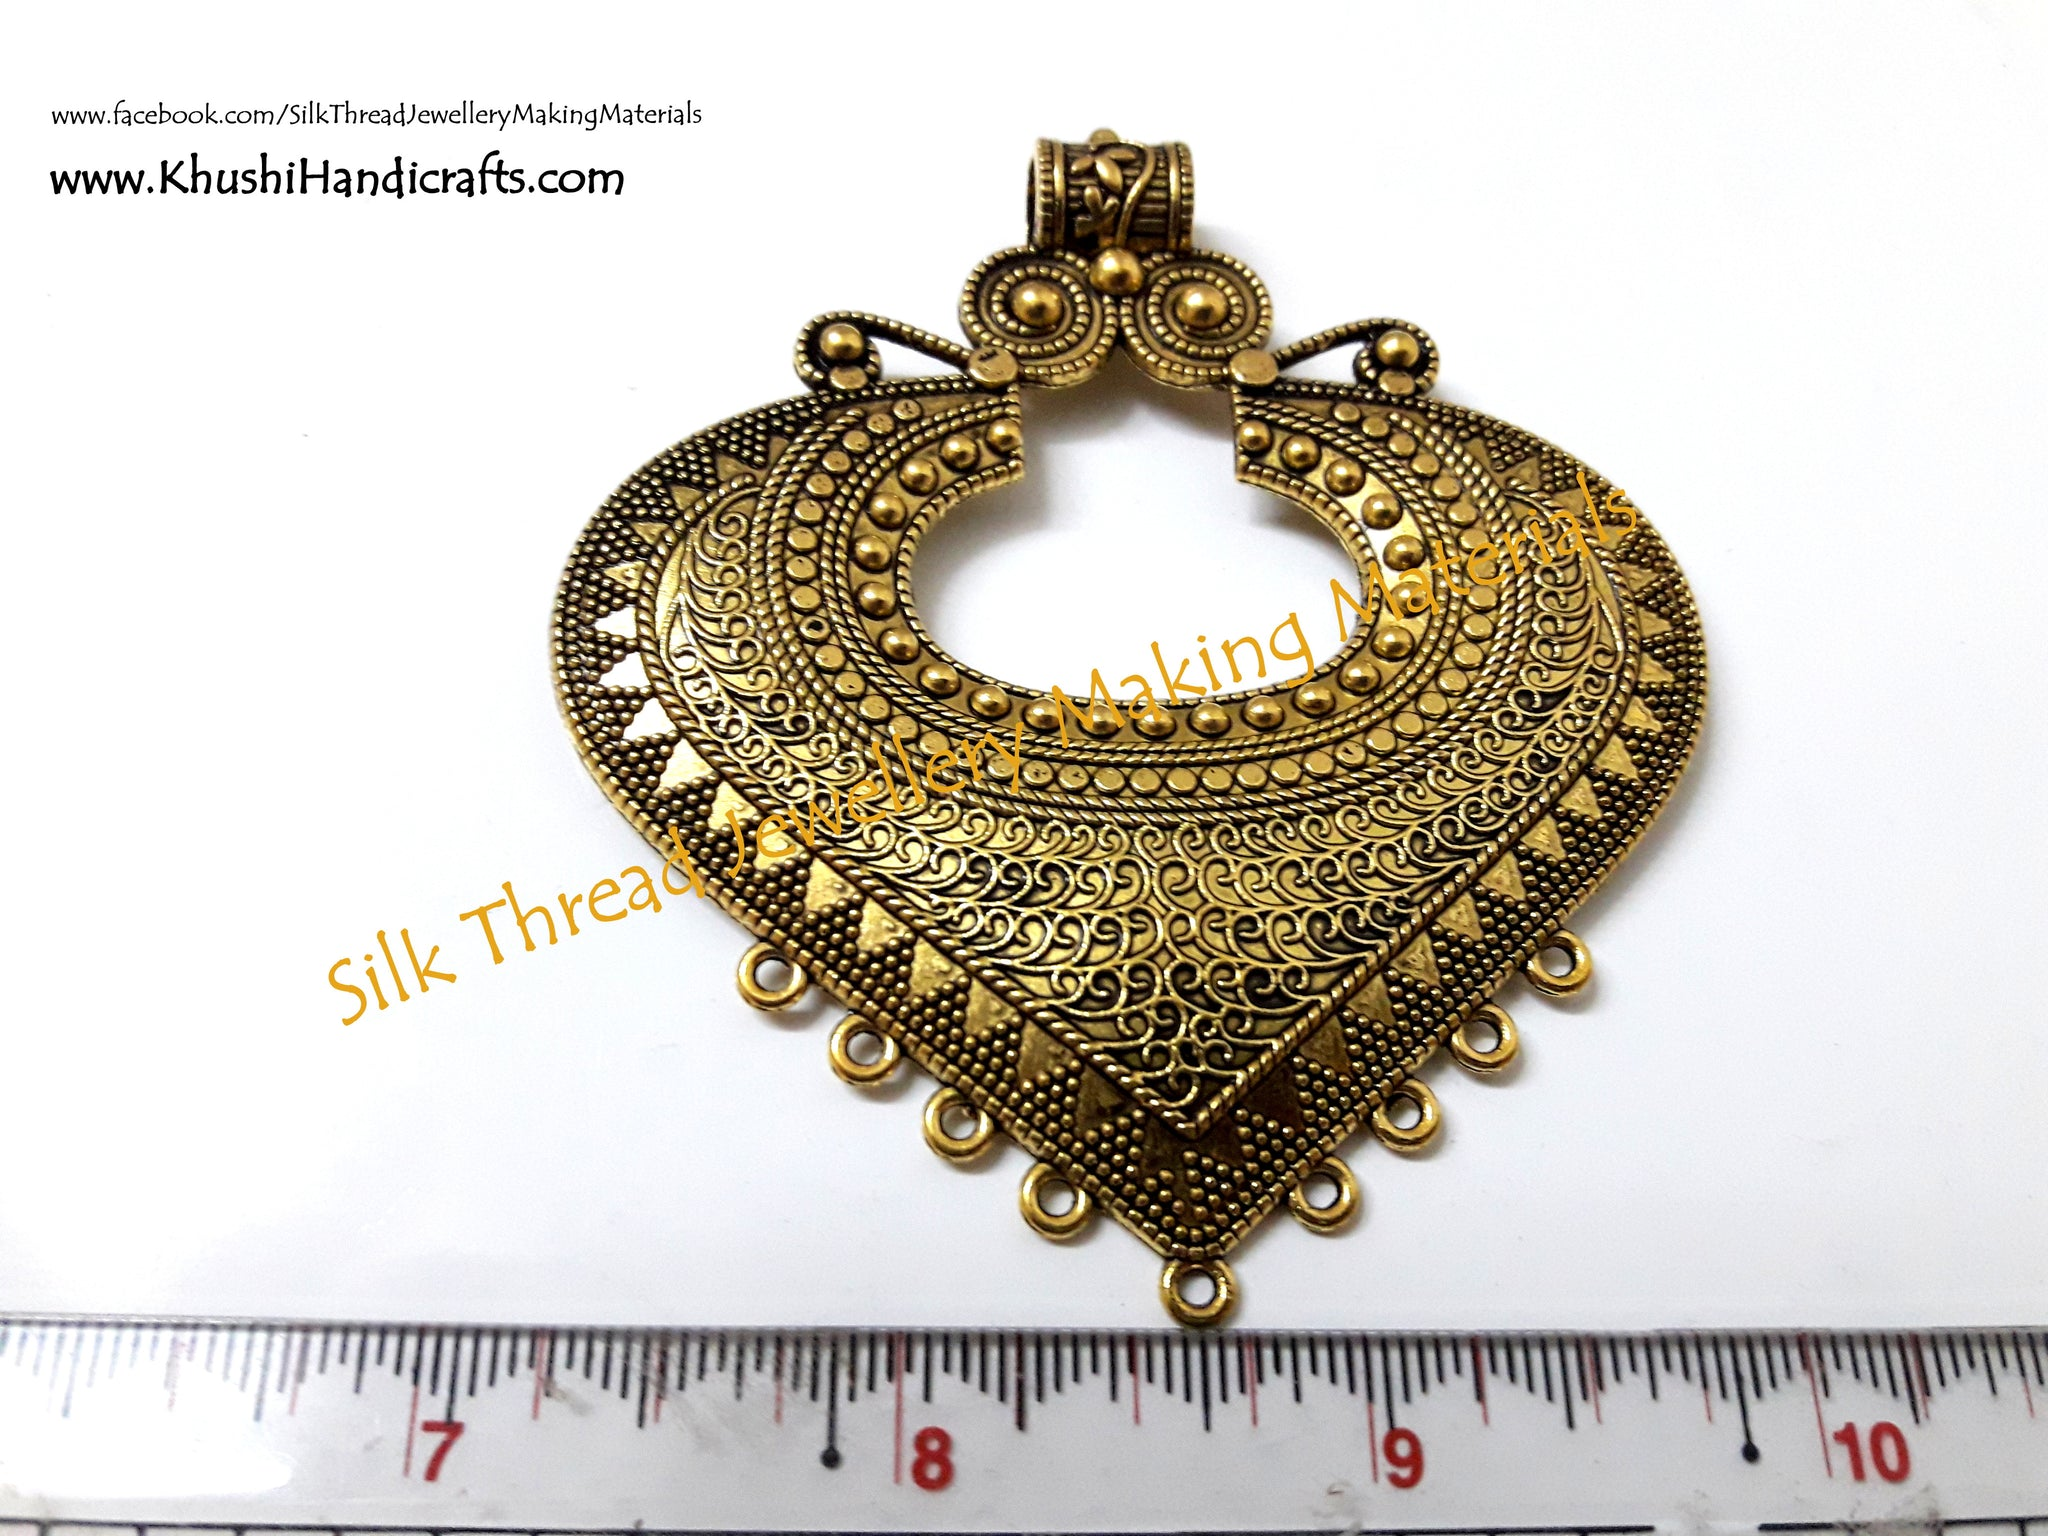 Antique Gold Designer Pendant 3. Jewellery Materials!